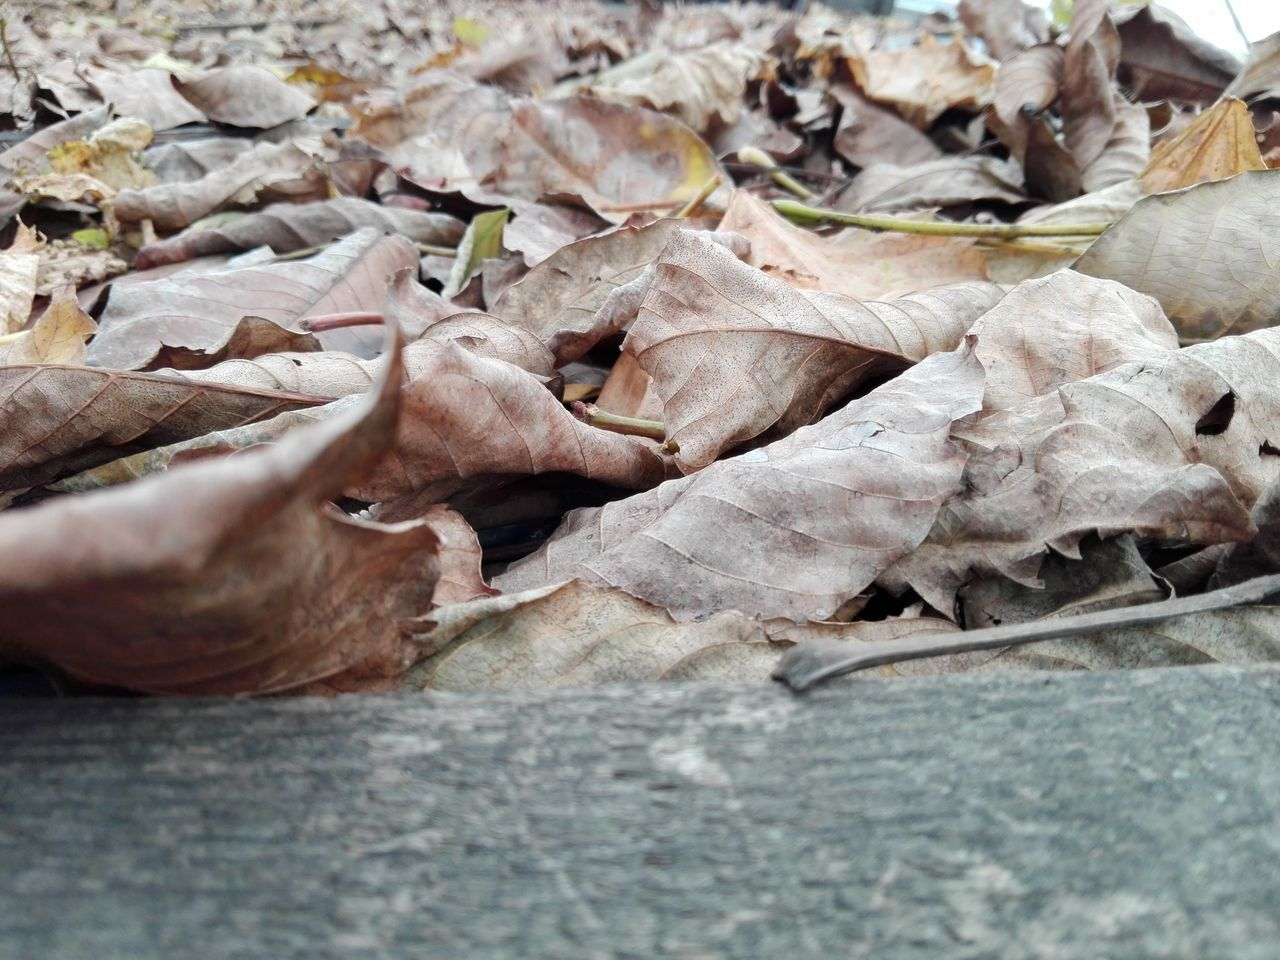 leaf, dry, no people, change, close-up, nature, autumn, day, fragility, outdoors, food, freshness